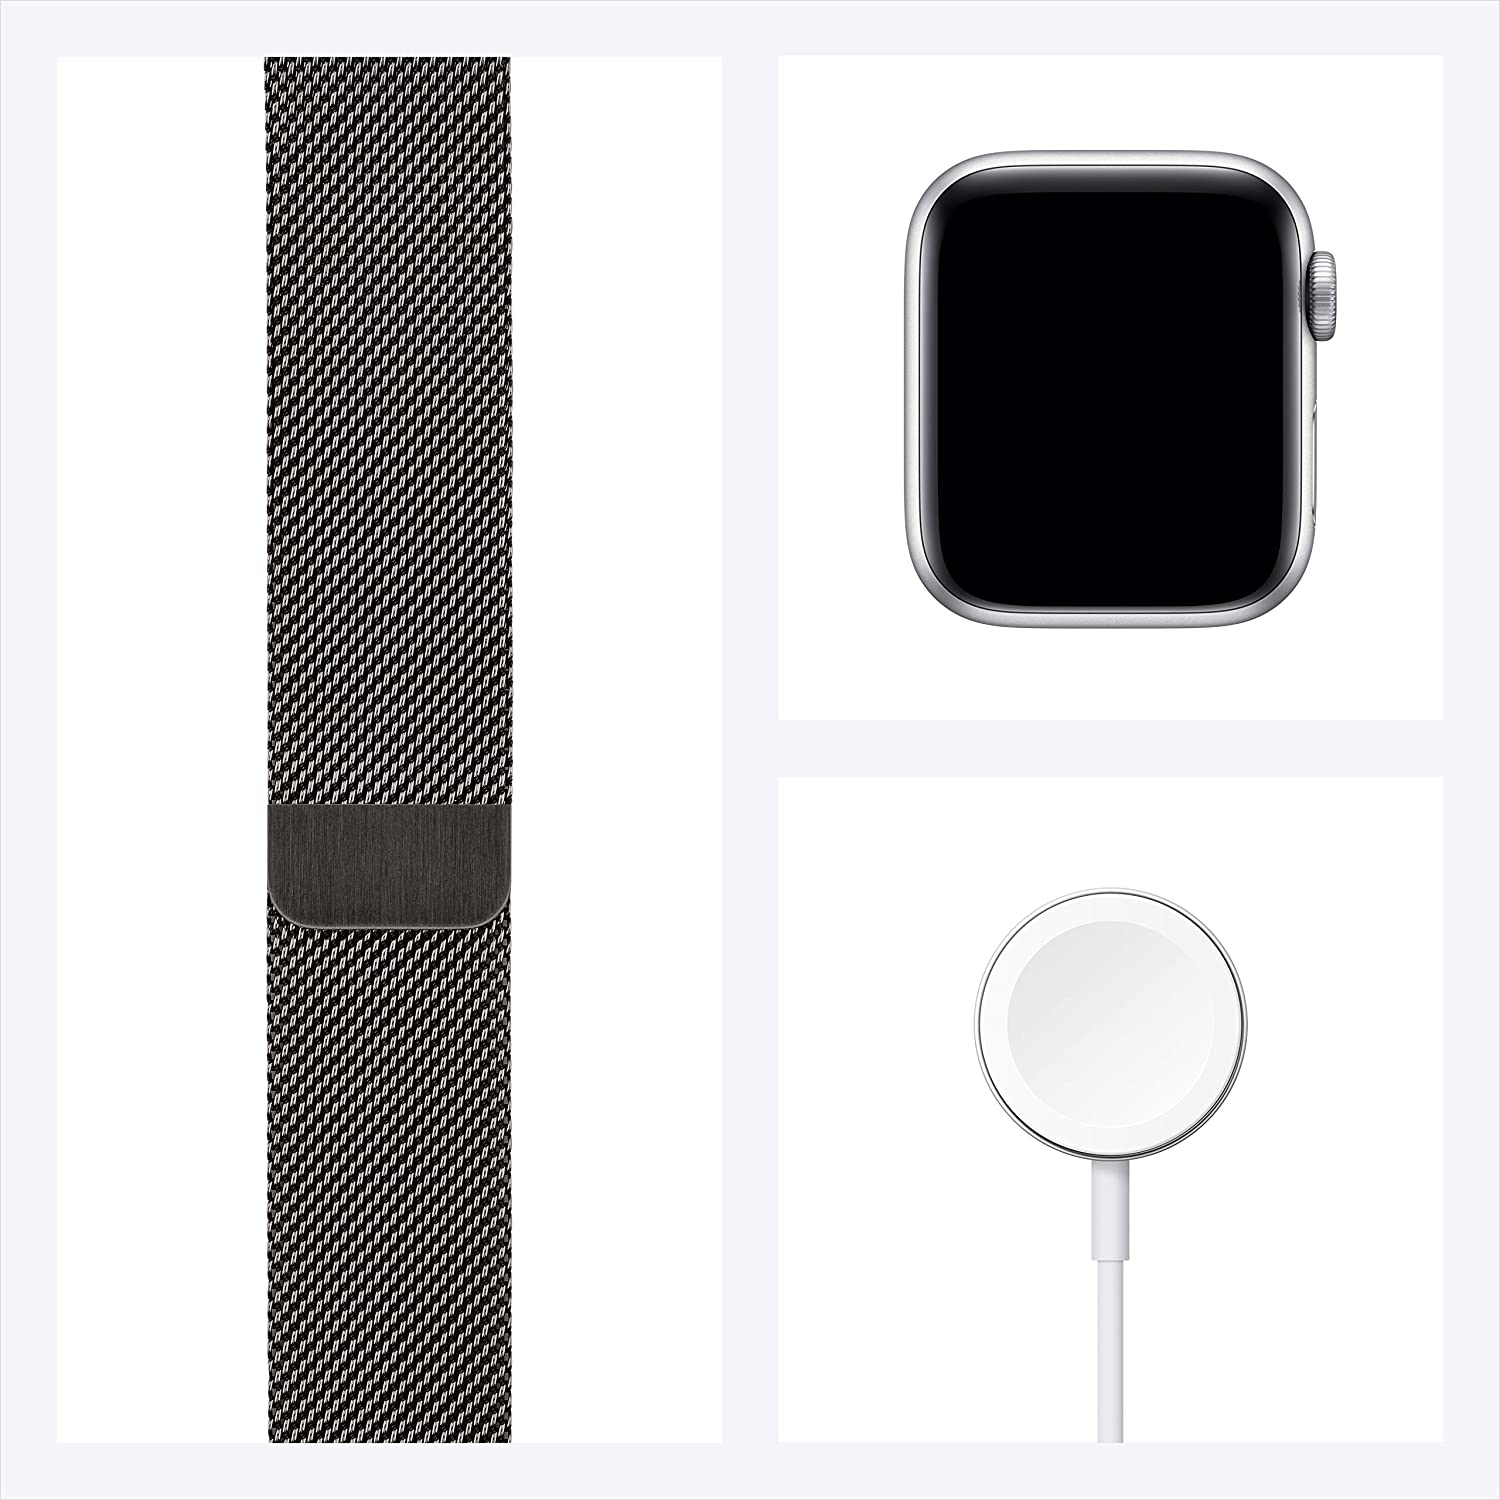 Apple Watch Series 6 (GPS + Cellular, 44mm) - Graphite Stainless Steel Case with Graphite Milanese Loop